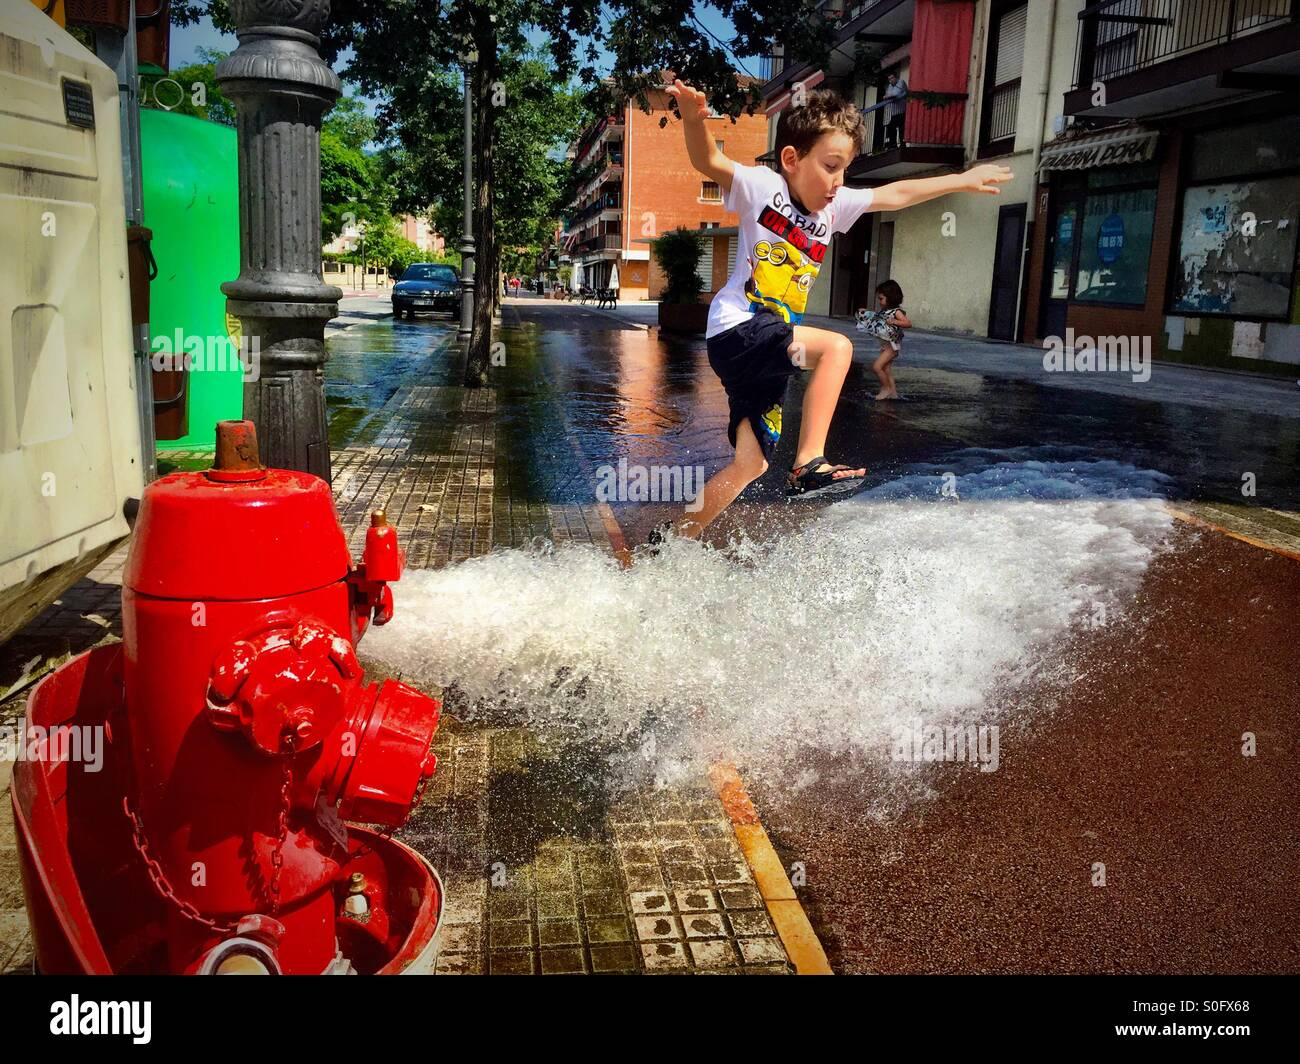 Summer fun- boy leaping over water hydrant stream - Stock Image